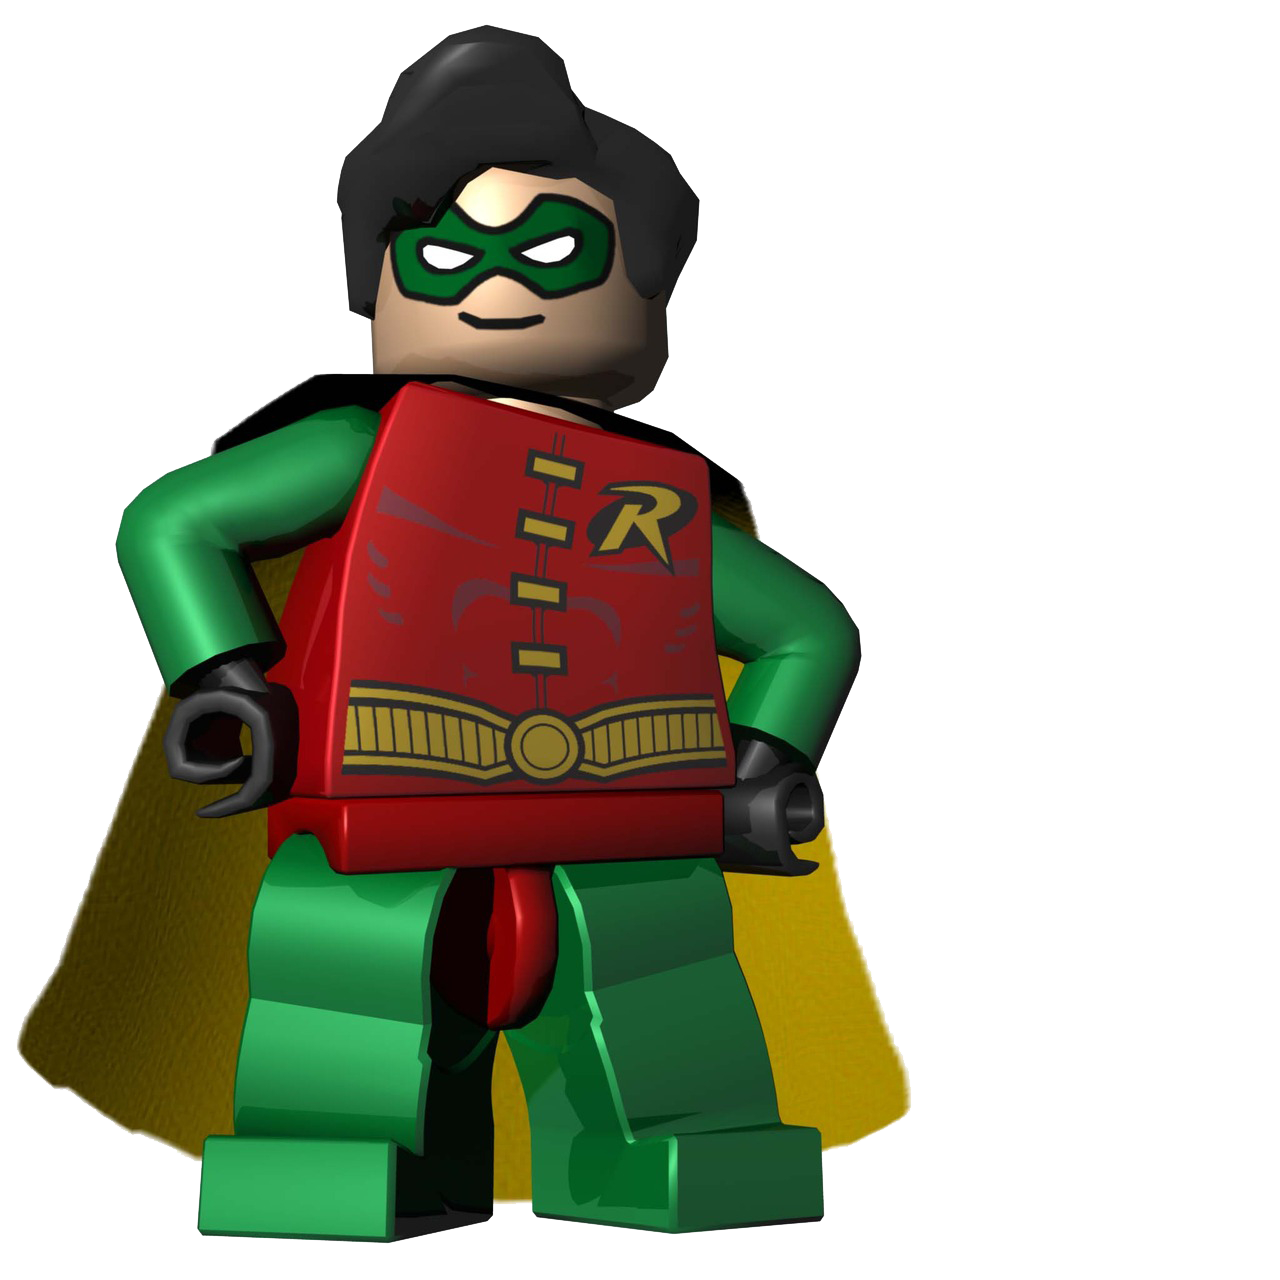 Group lego pencil and. Robin clipart spring robin image freeuse